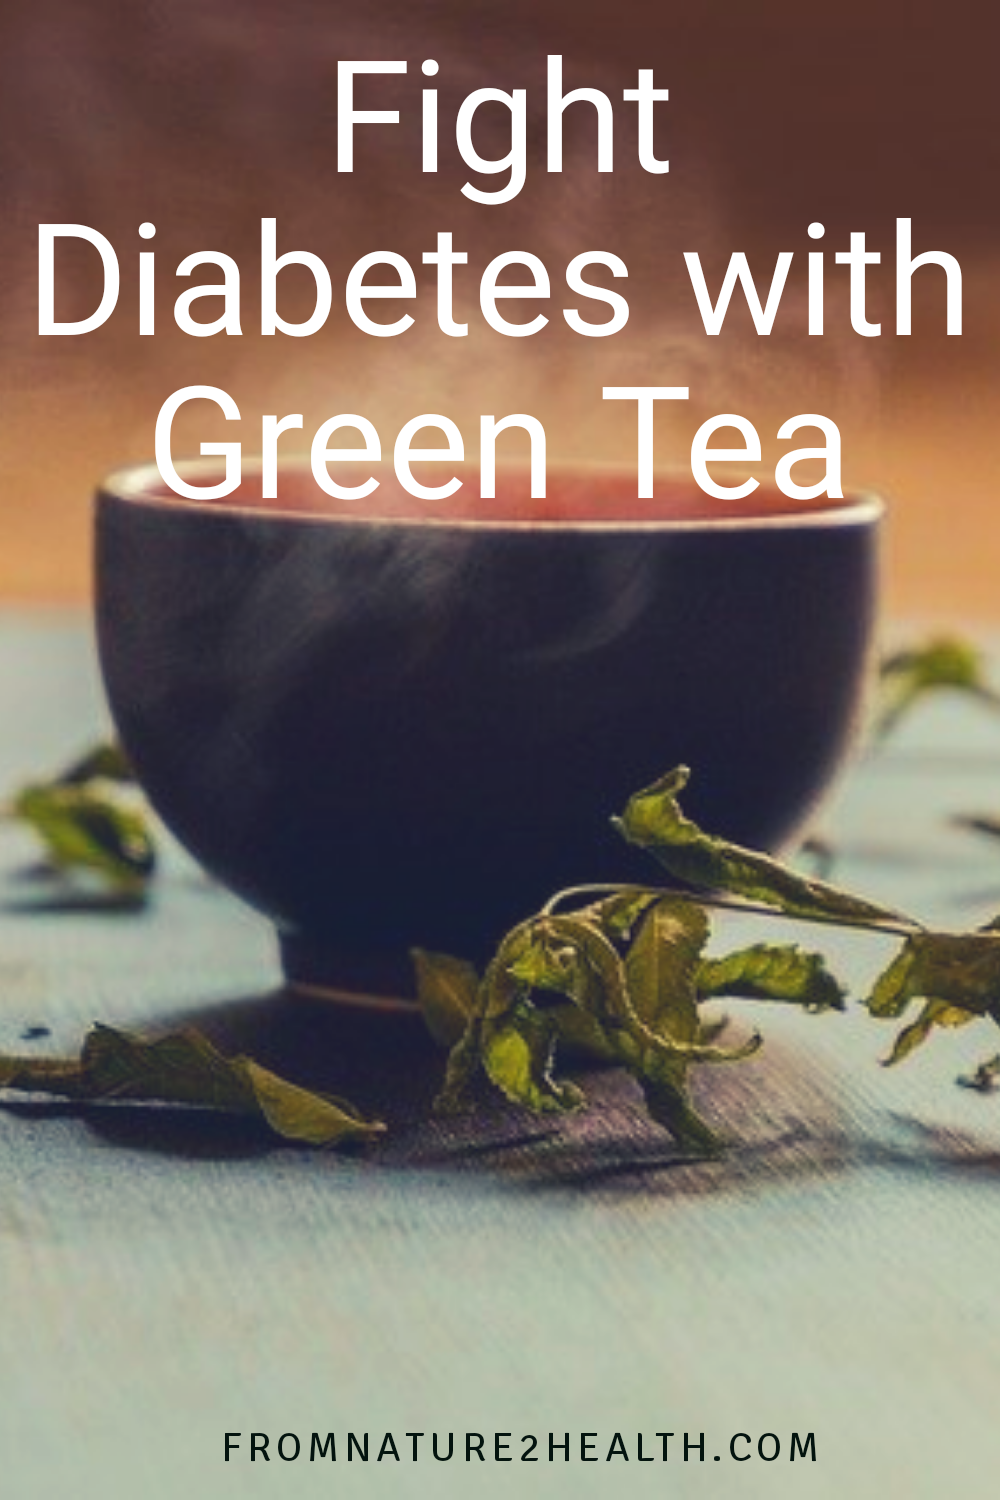 Green Tea for Diabetic